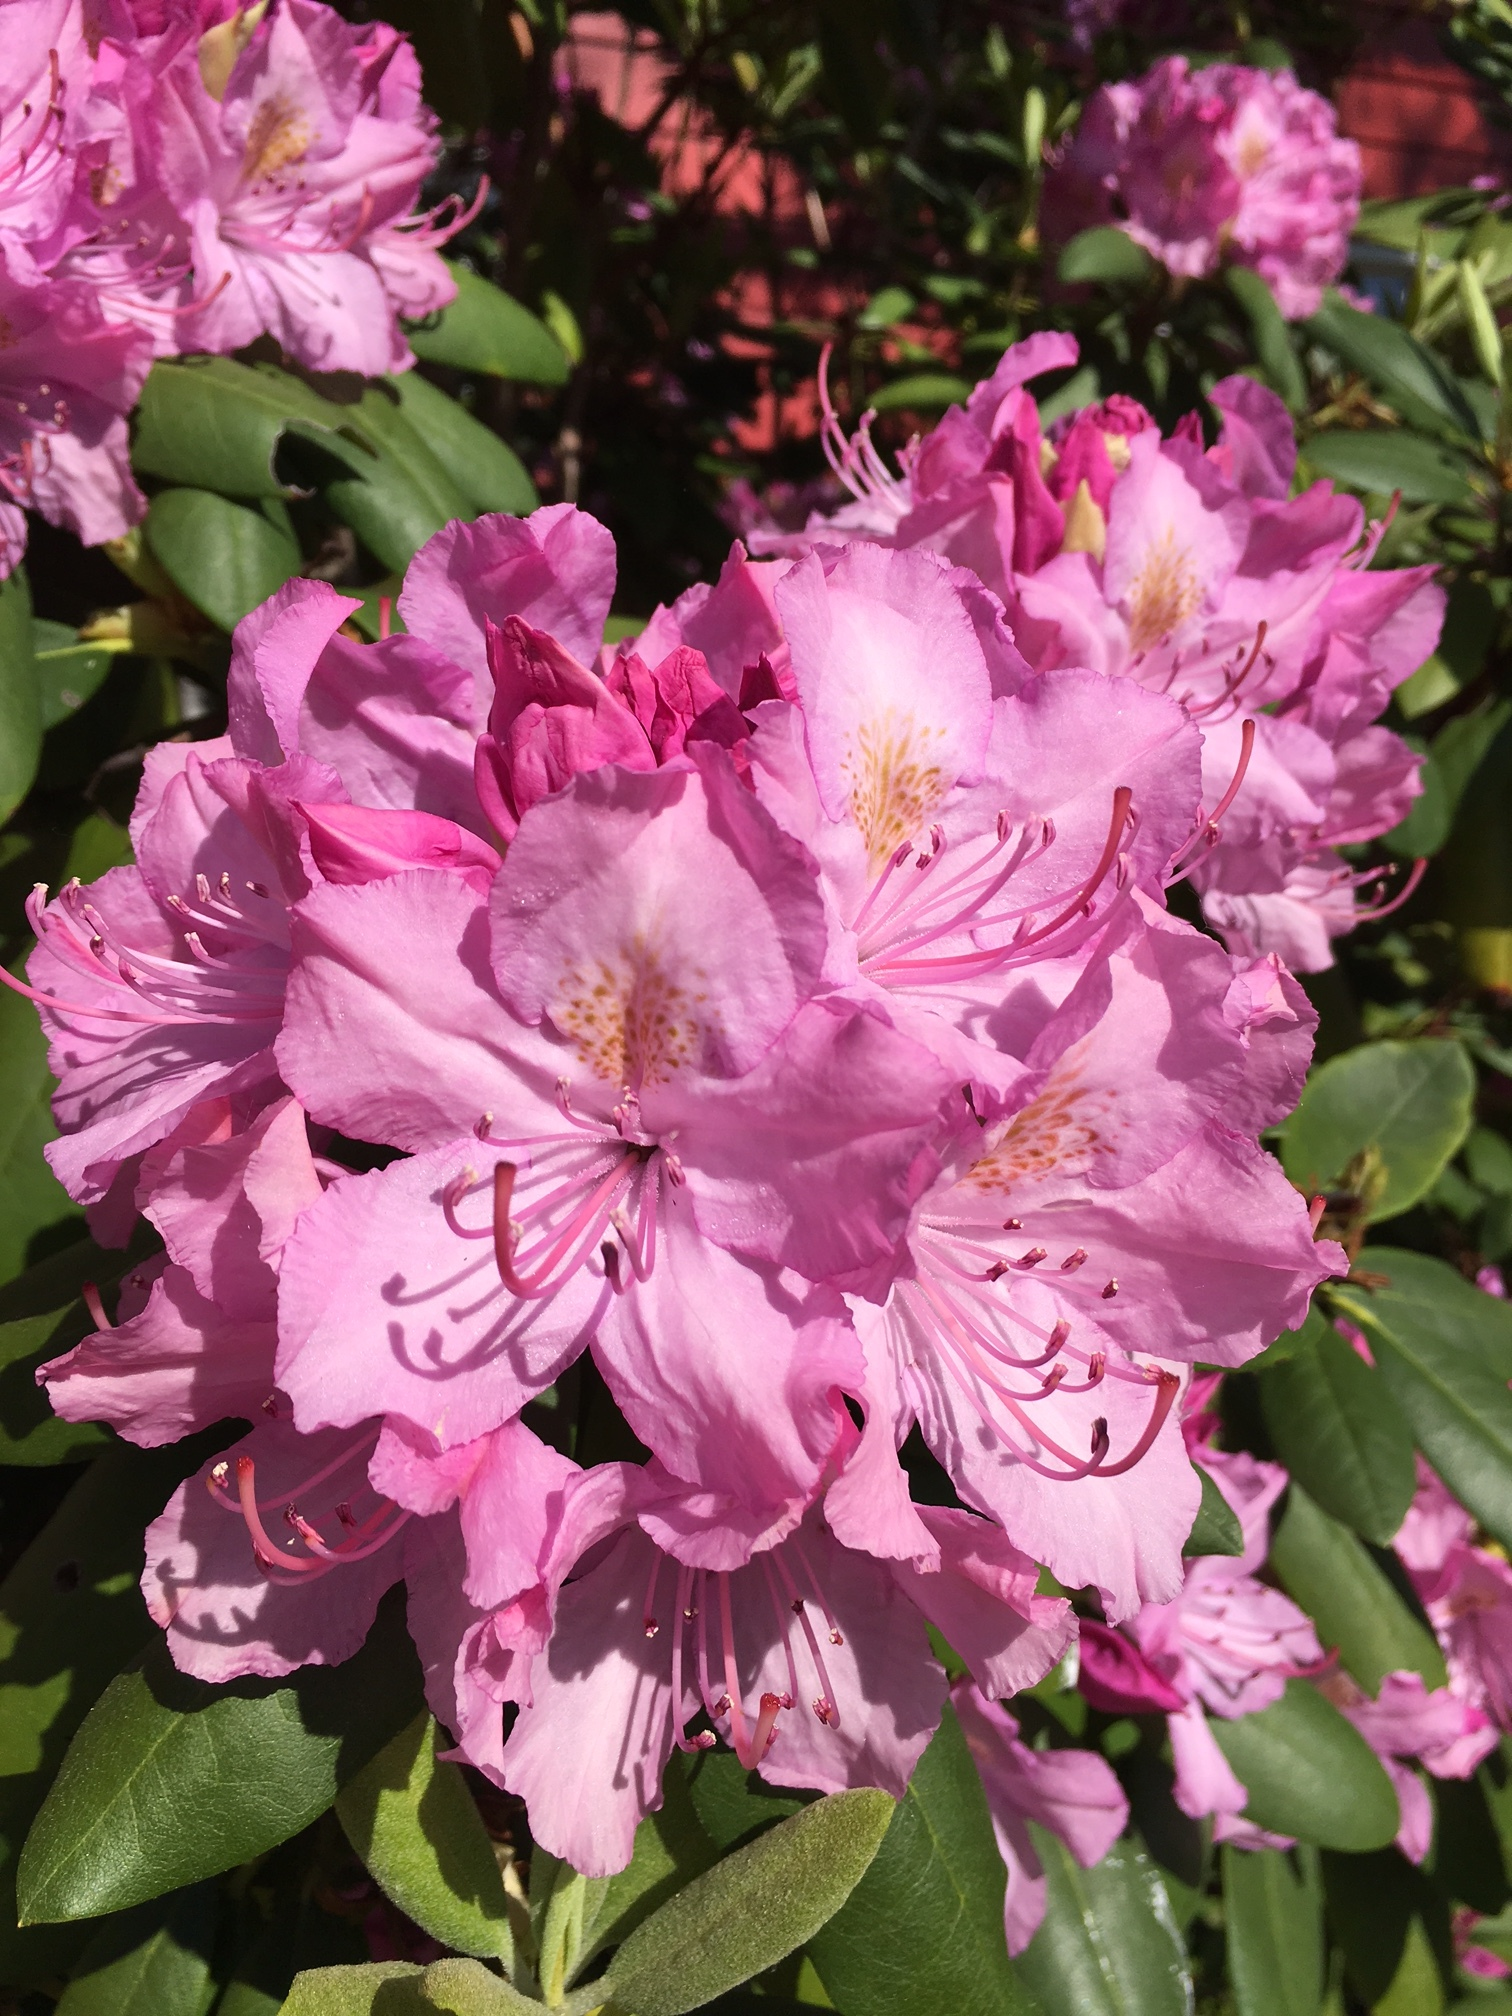 Rododendrons are native to NJ and on my list for the yard.